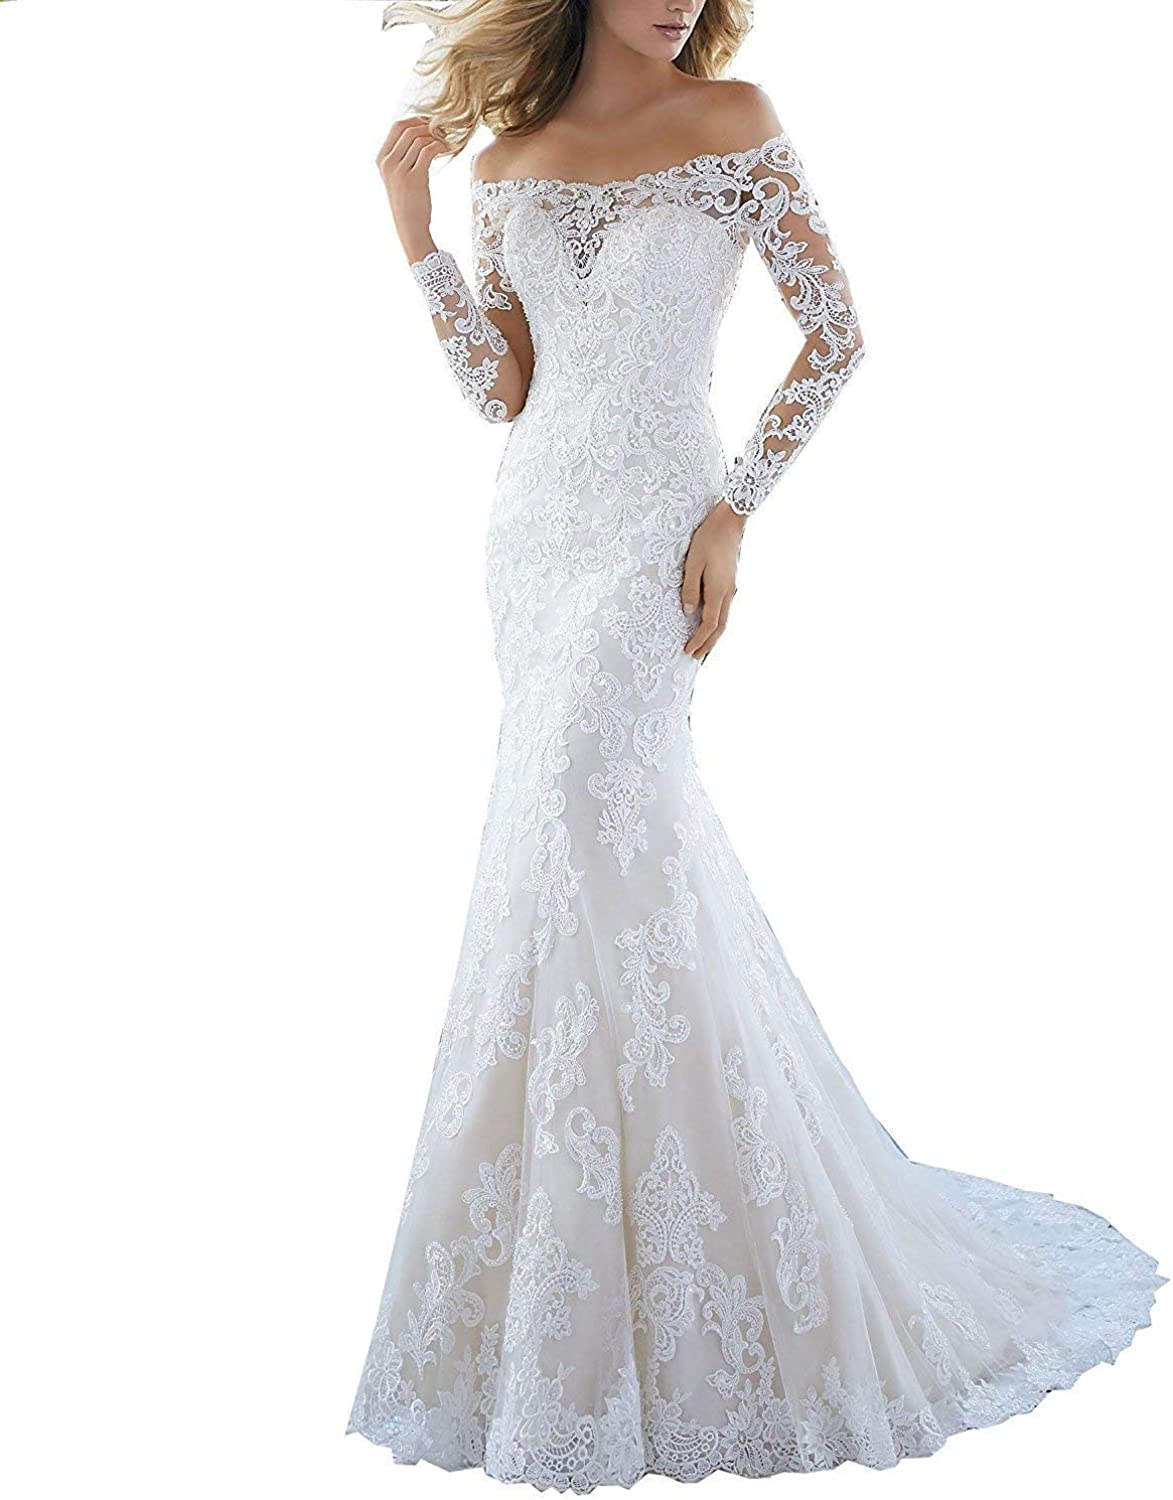 Fitty Lell Women Mermaid Lace Wedding Dress Long Sleeves Formal Evening Gown